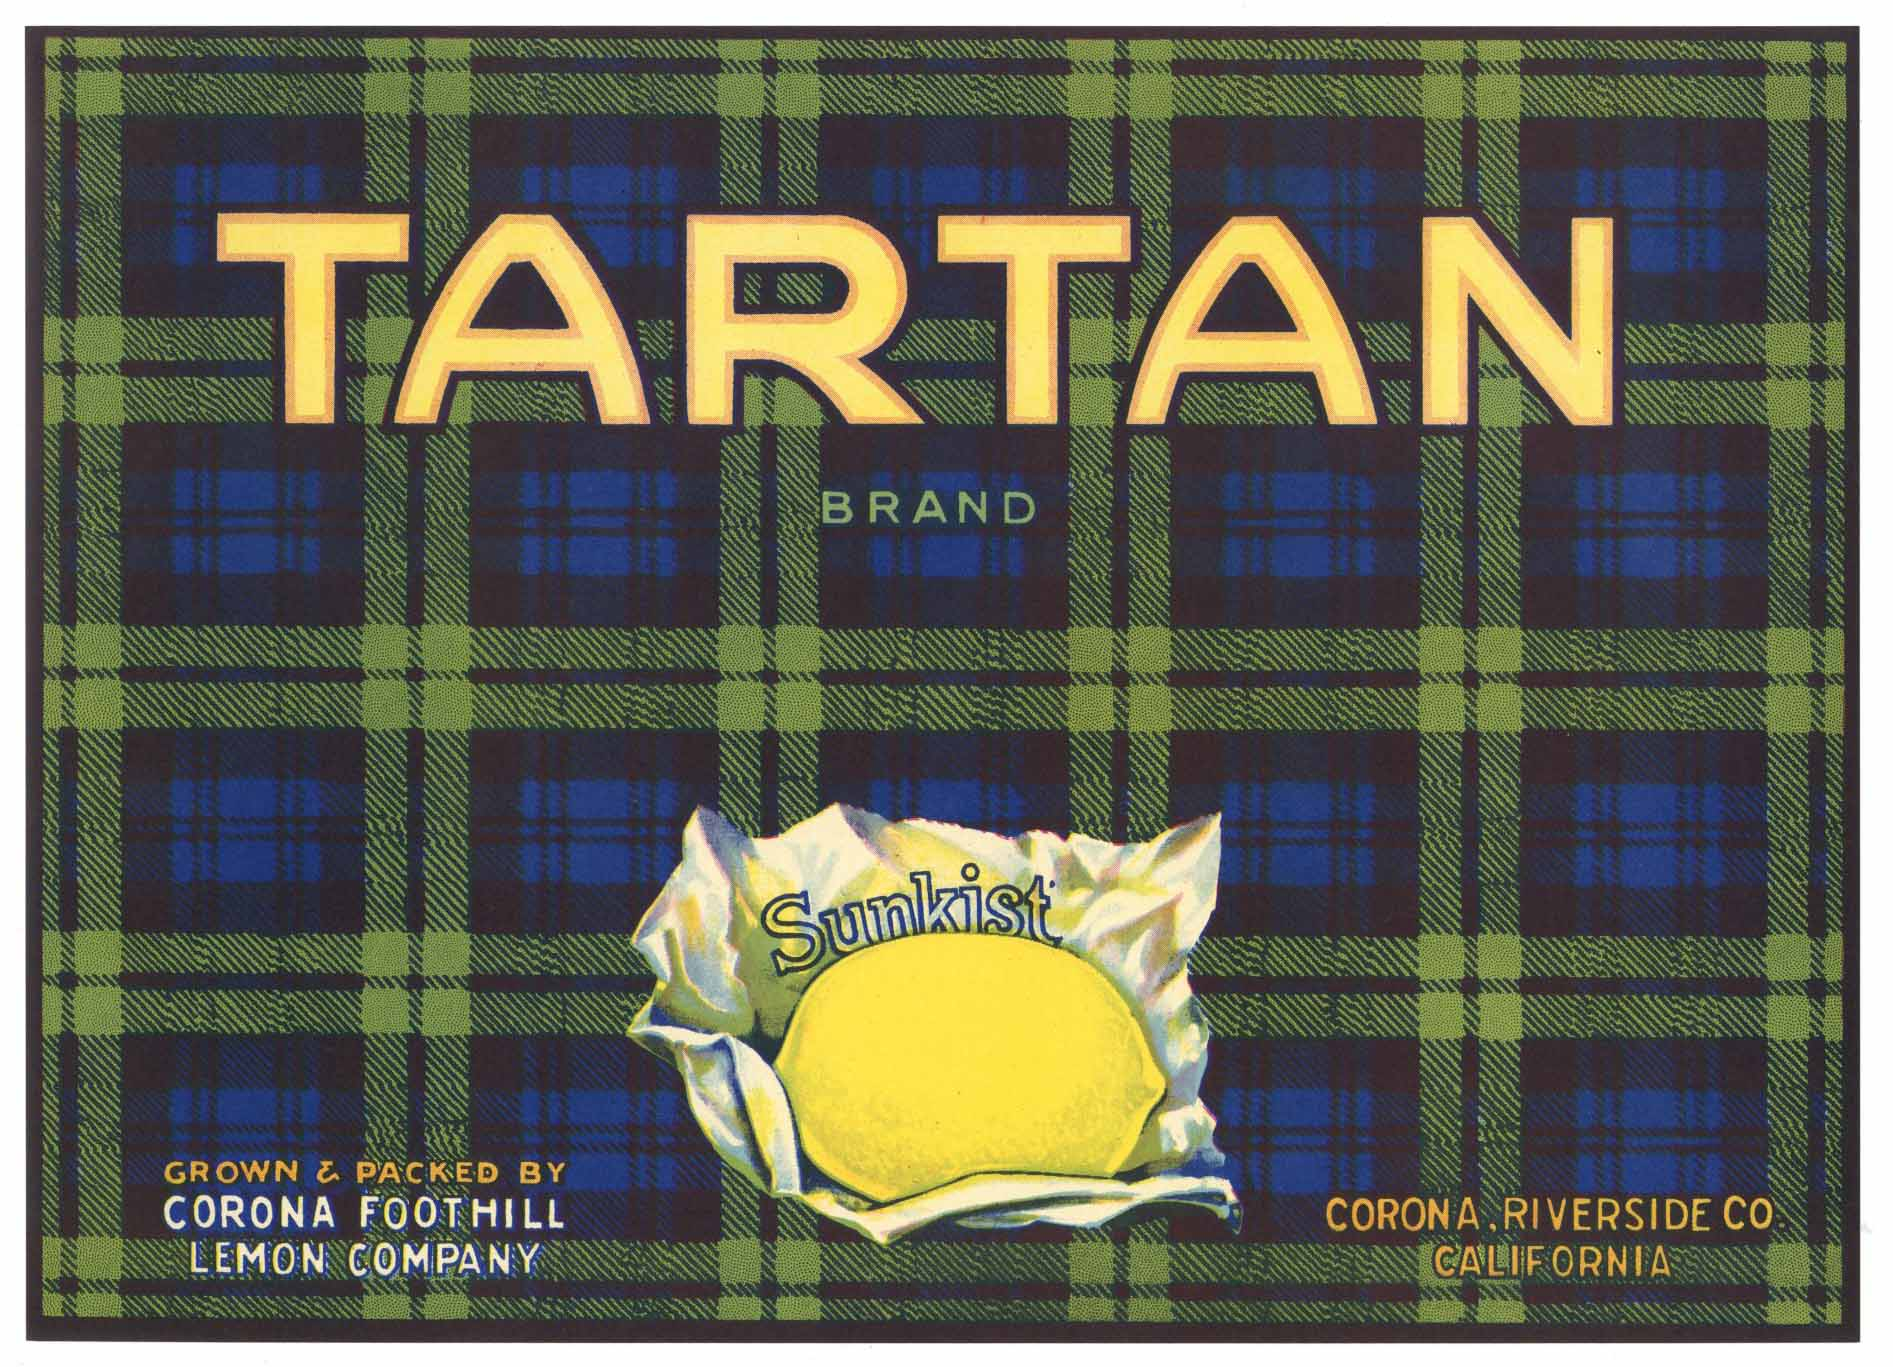 Tartan Brand Vintage Corona California Lemon Crate Label